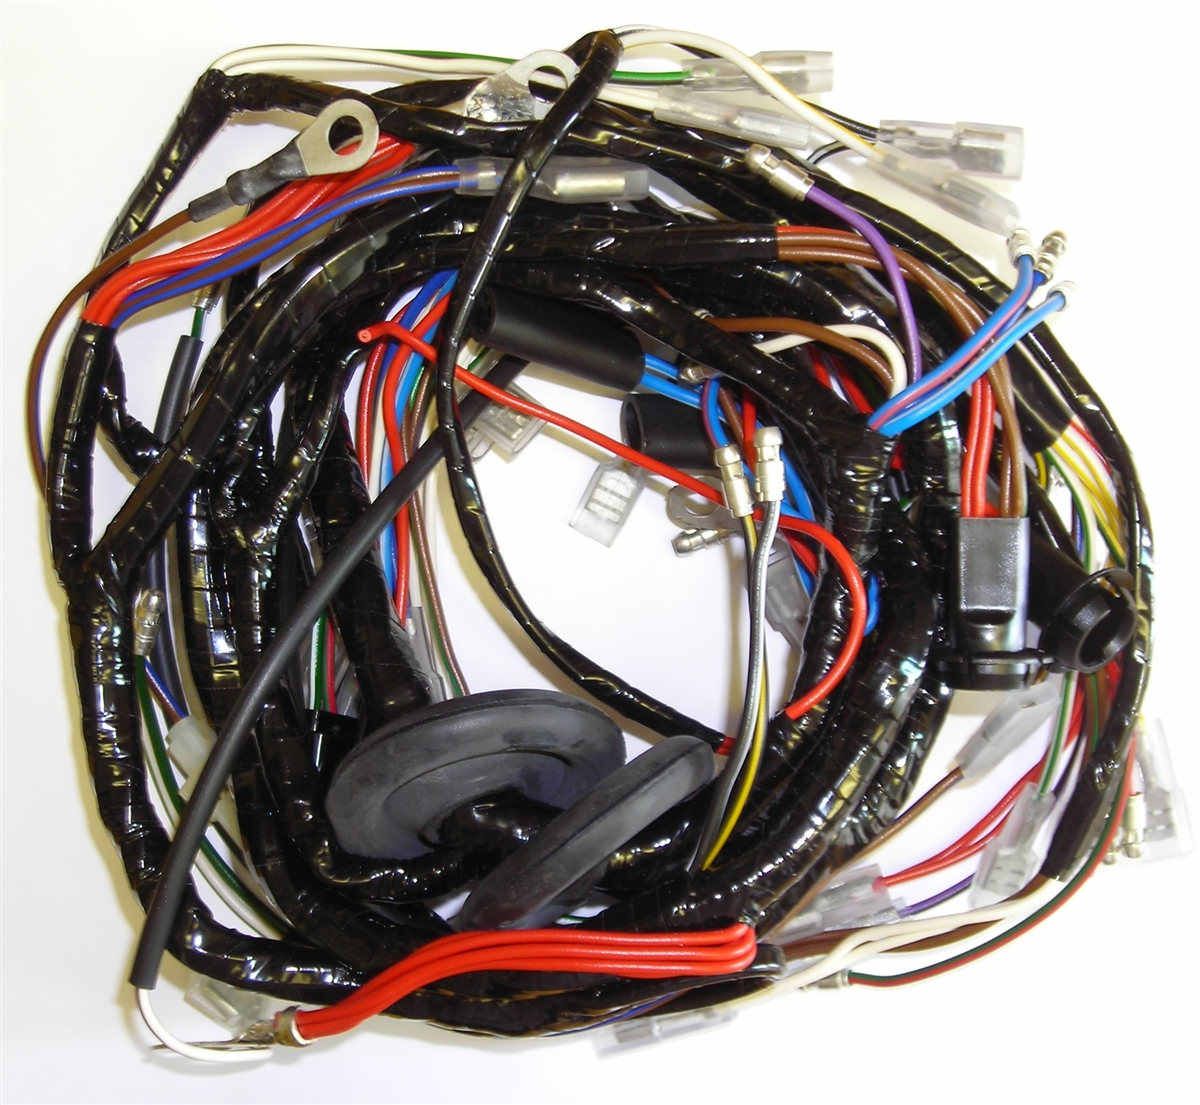 MC71PP 2?1374666211 motorcycle wiring harness wiring harness for motorcycles at crackthecode.co